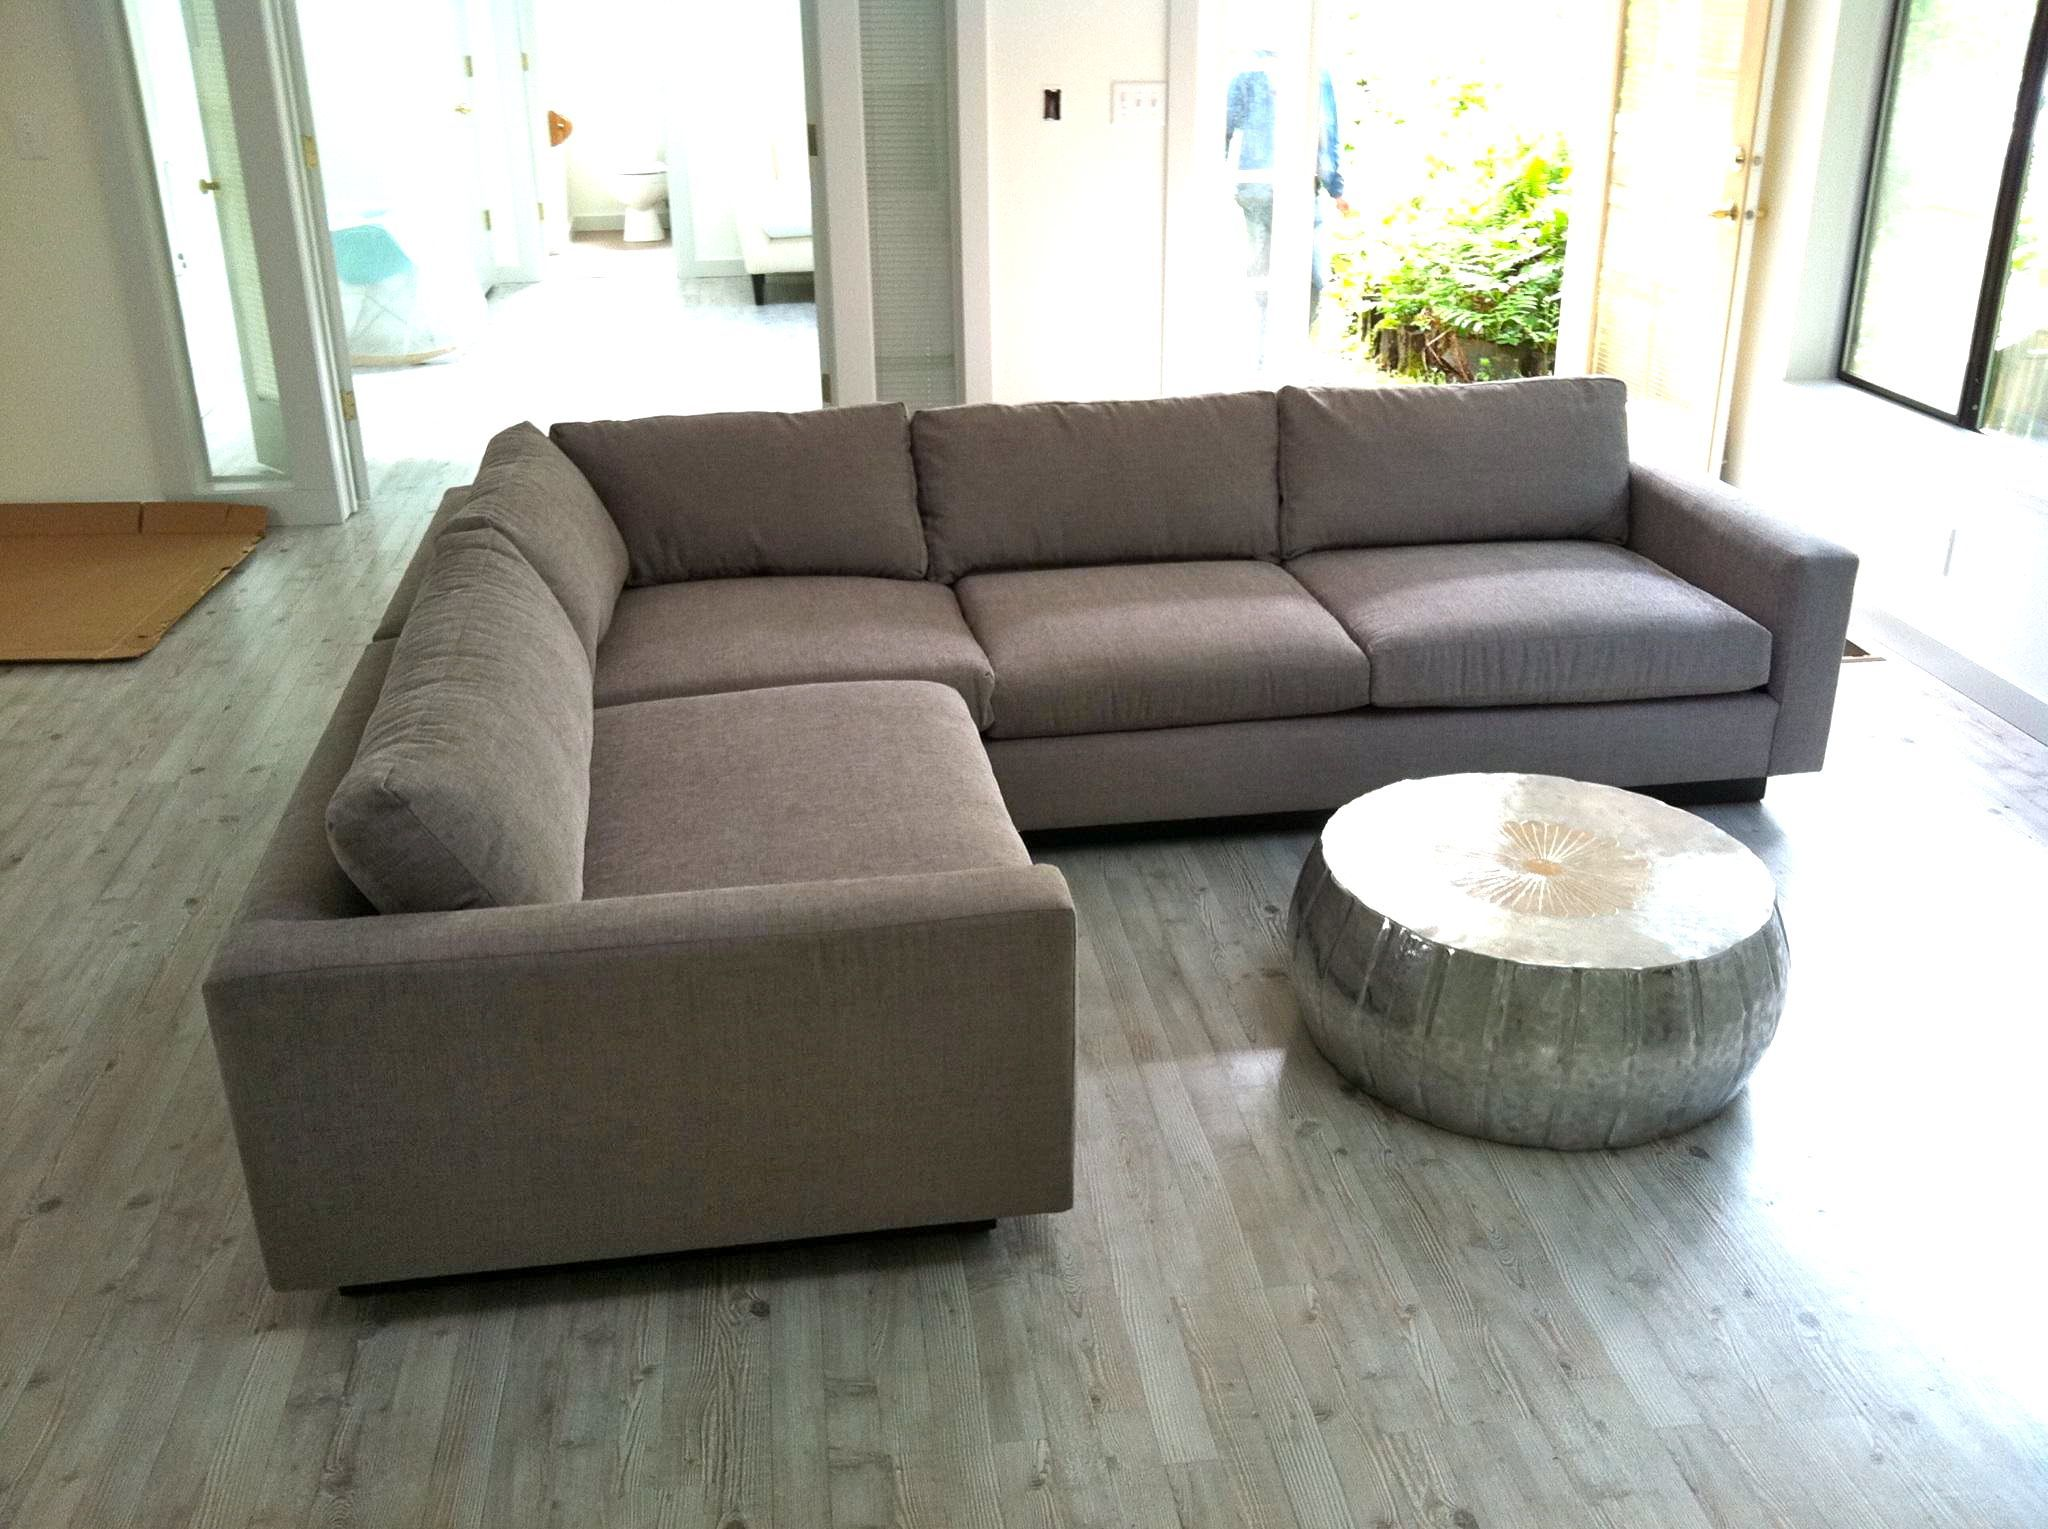 piece sofa simmons lots thecreativescientist sectional com reviews big sofas rpisite manhattan